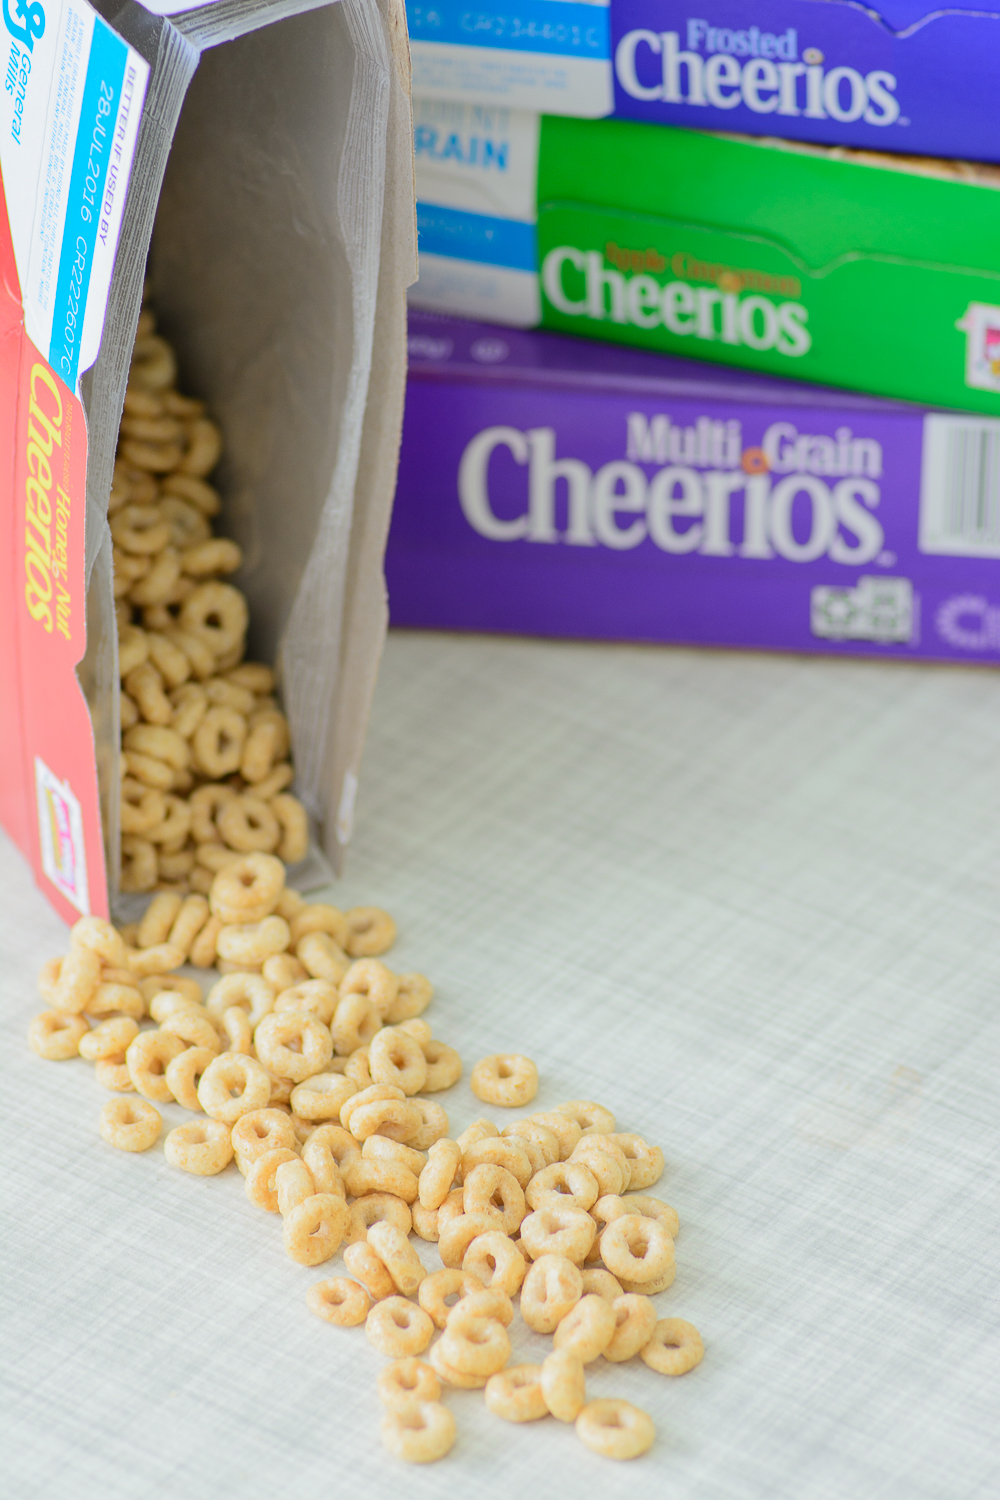 Honey Nut Cheerios Cereal Bars with Gluten-Free Cheerios